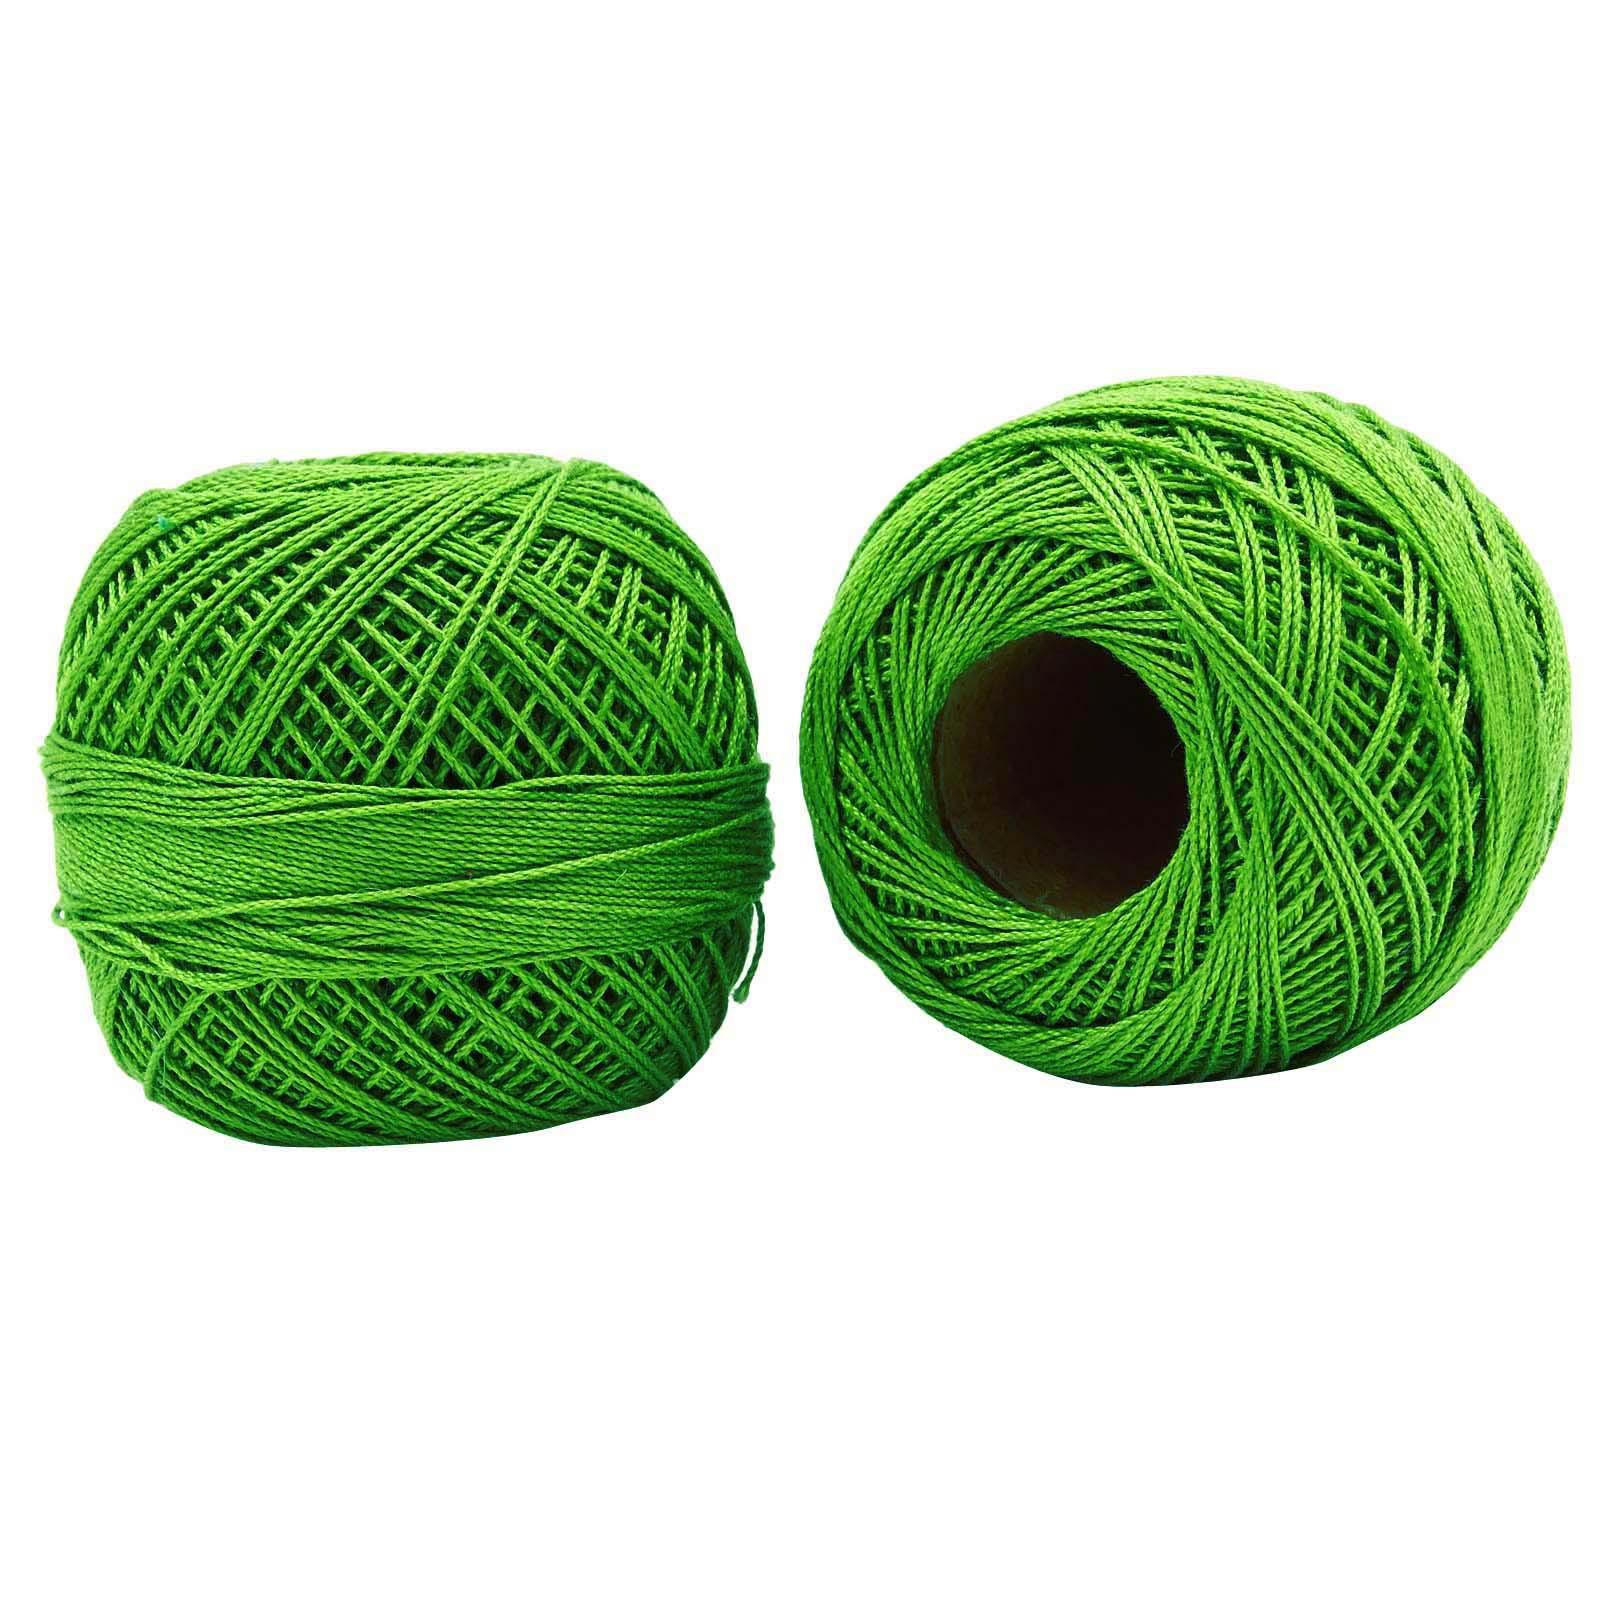 New Anchor Crochet Polyester Knitting Tatting Ball Embroidery Crochet Cotton Thread Of New 50 Pics Crochet Cotton Thread